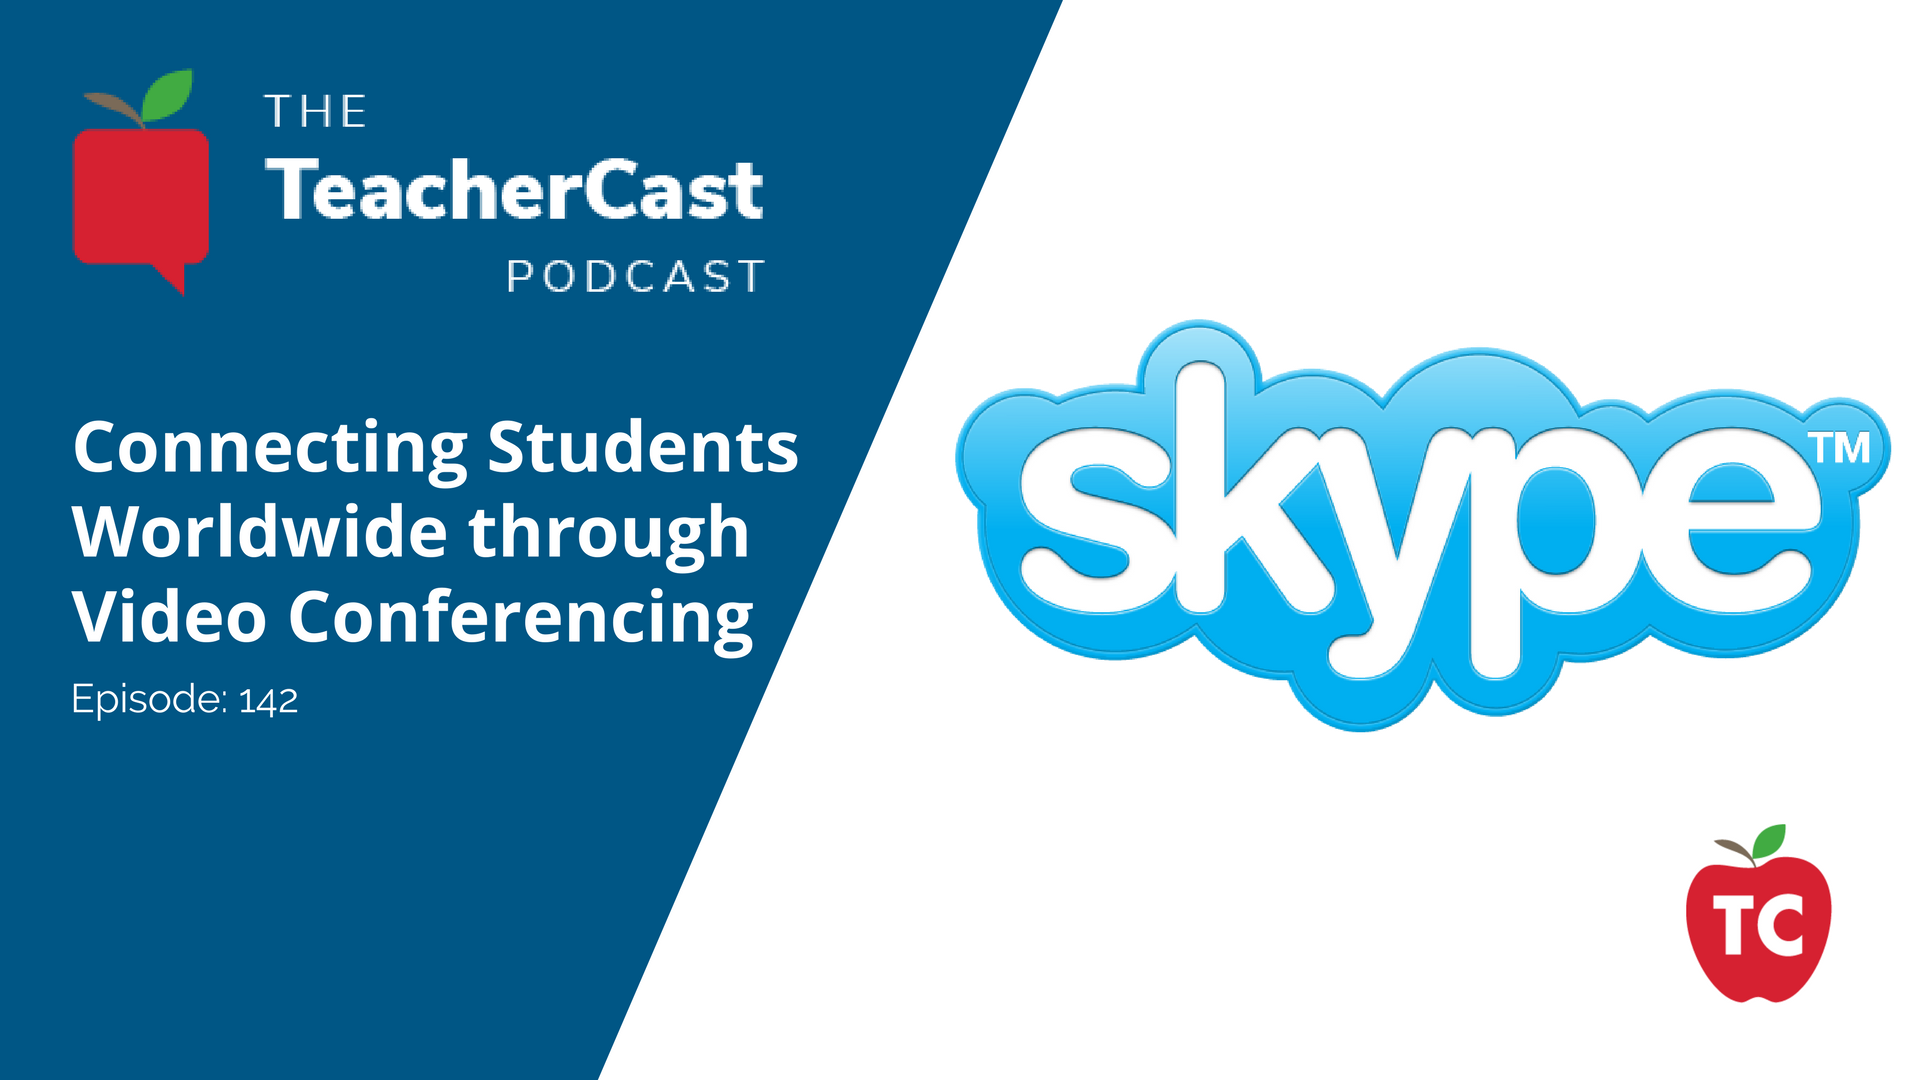 Video Conferencing with Skype